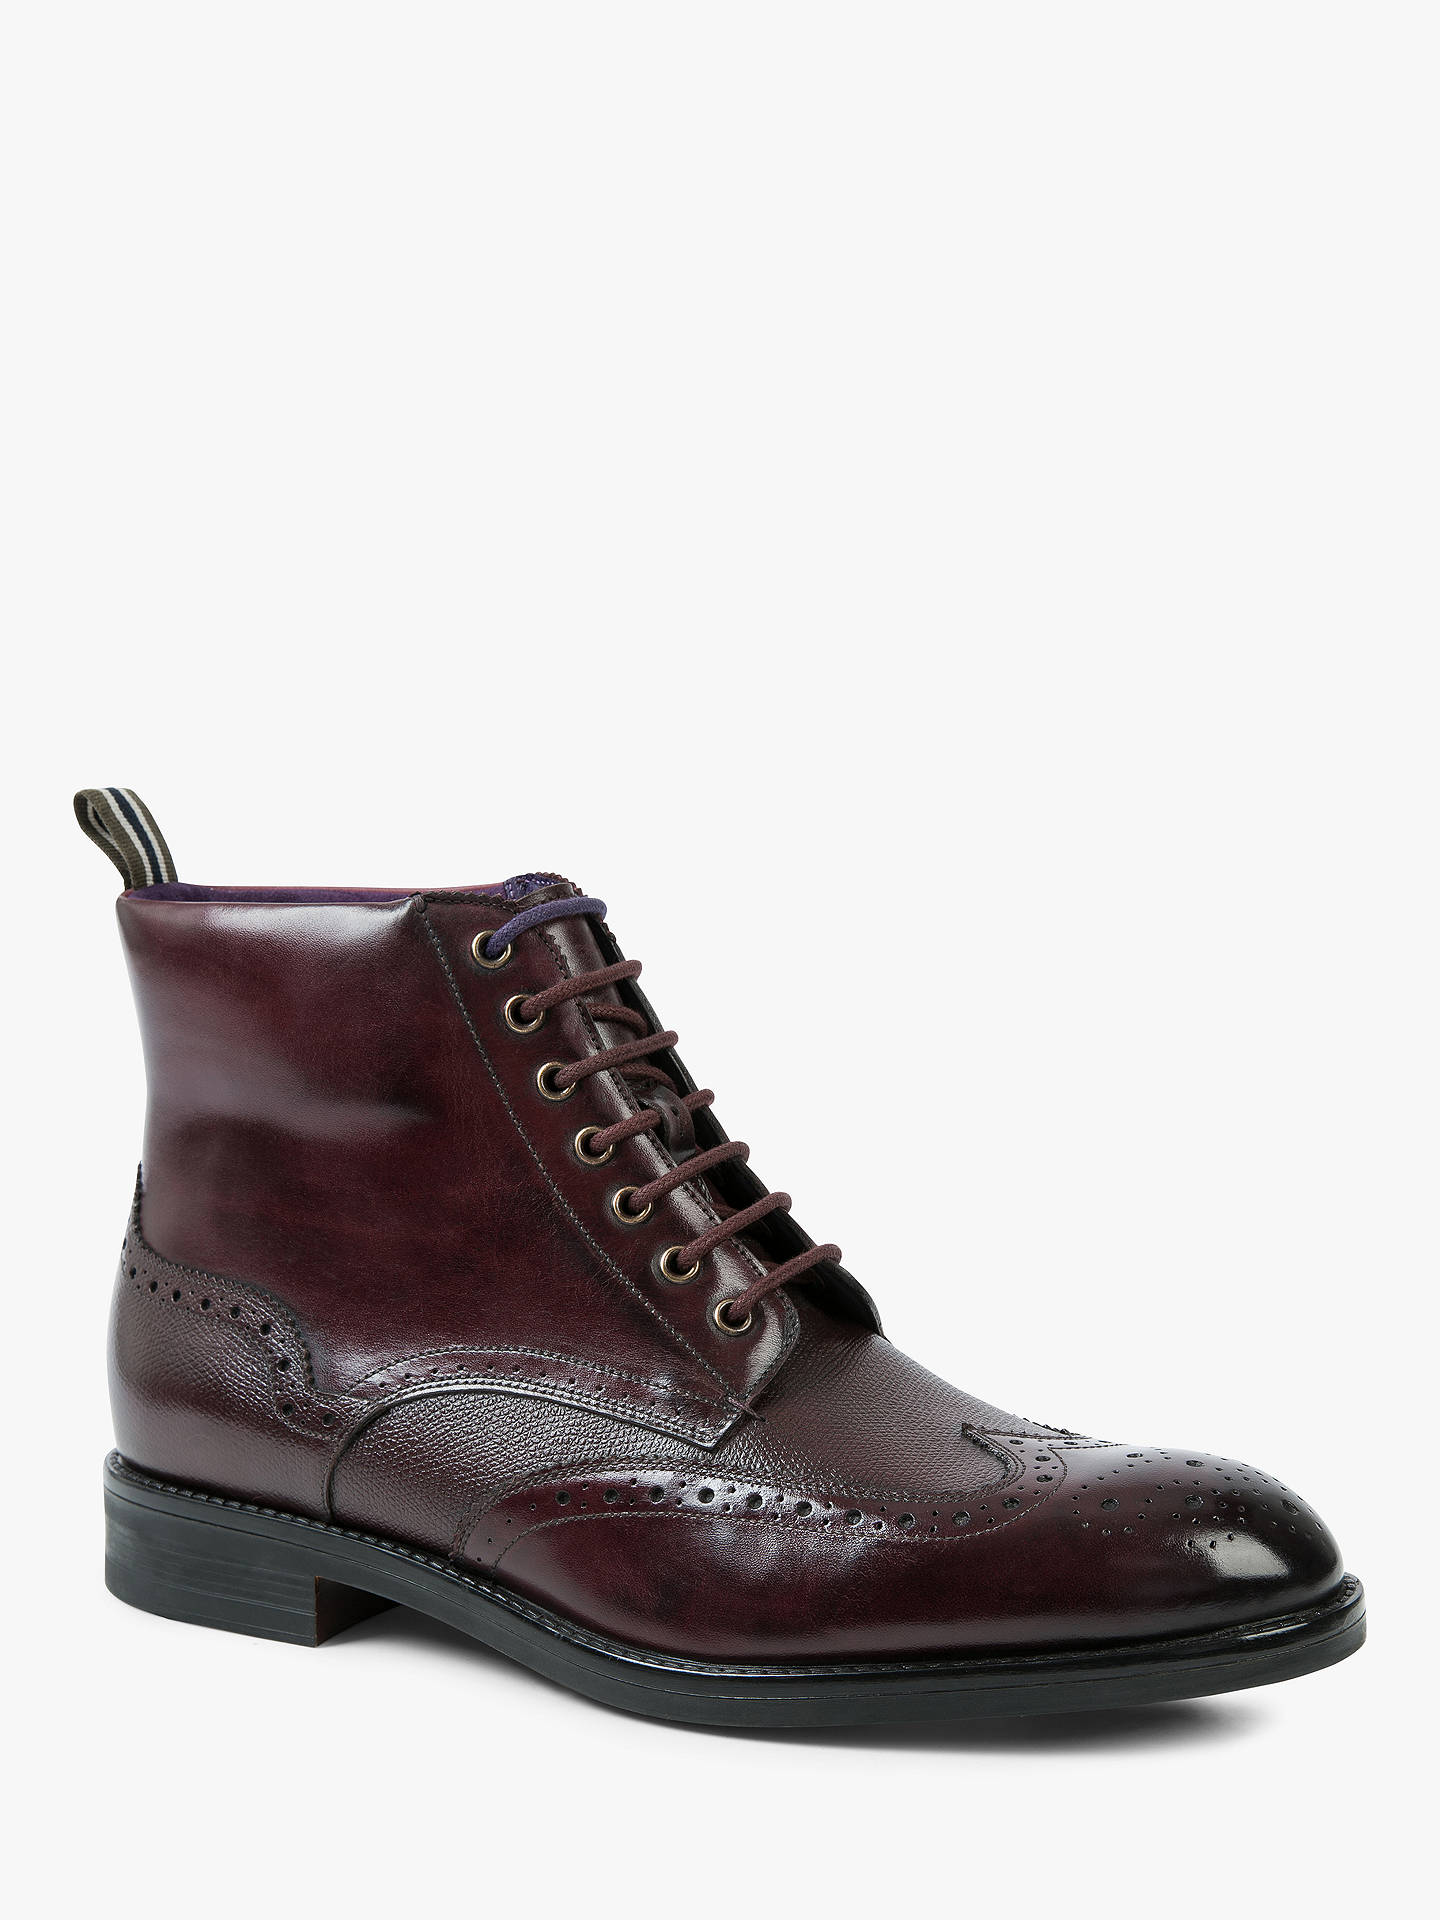 Buy Ted Baker Twrens Brogue Boots, Dark Red, 7 Online at johnlewis.com